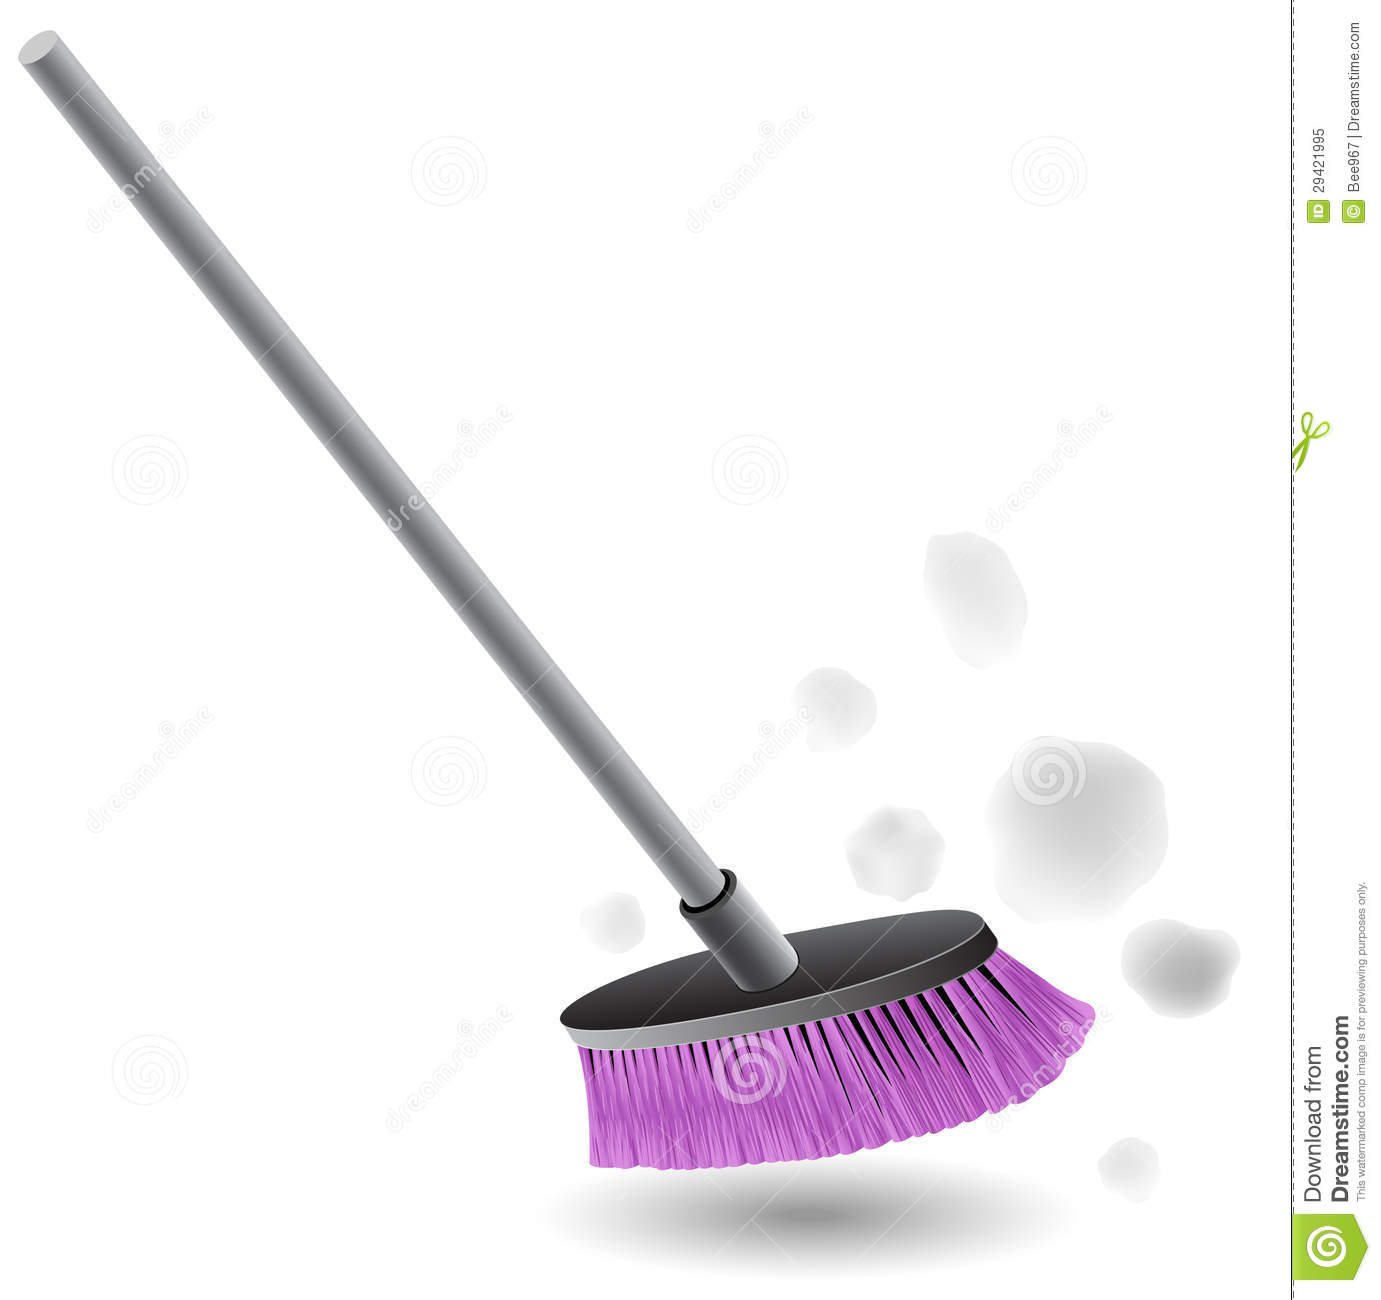 Broom Sweeping Dust Royalty Free Stock Photo Image 29421995